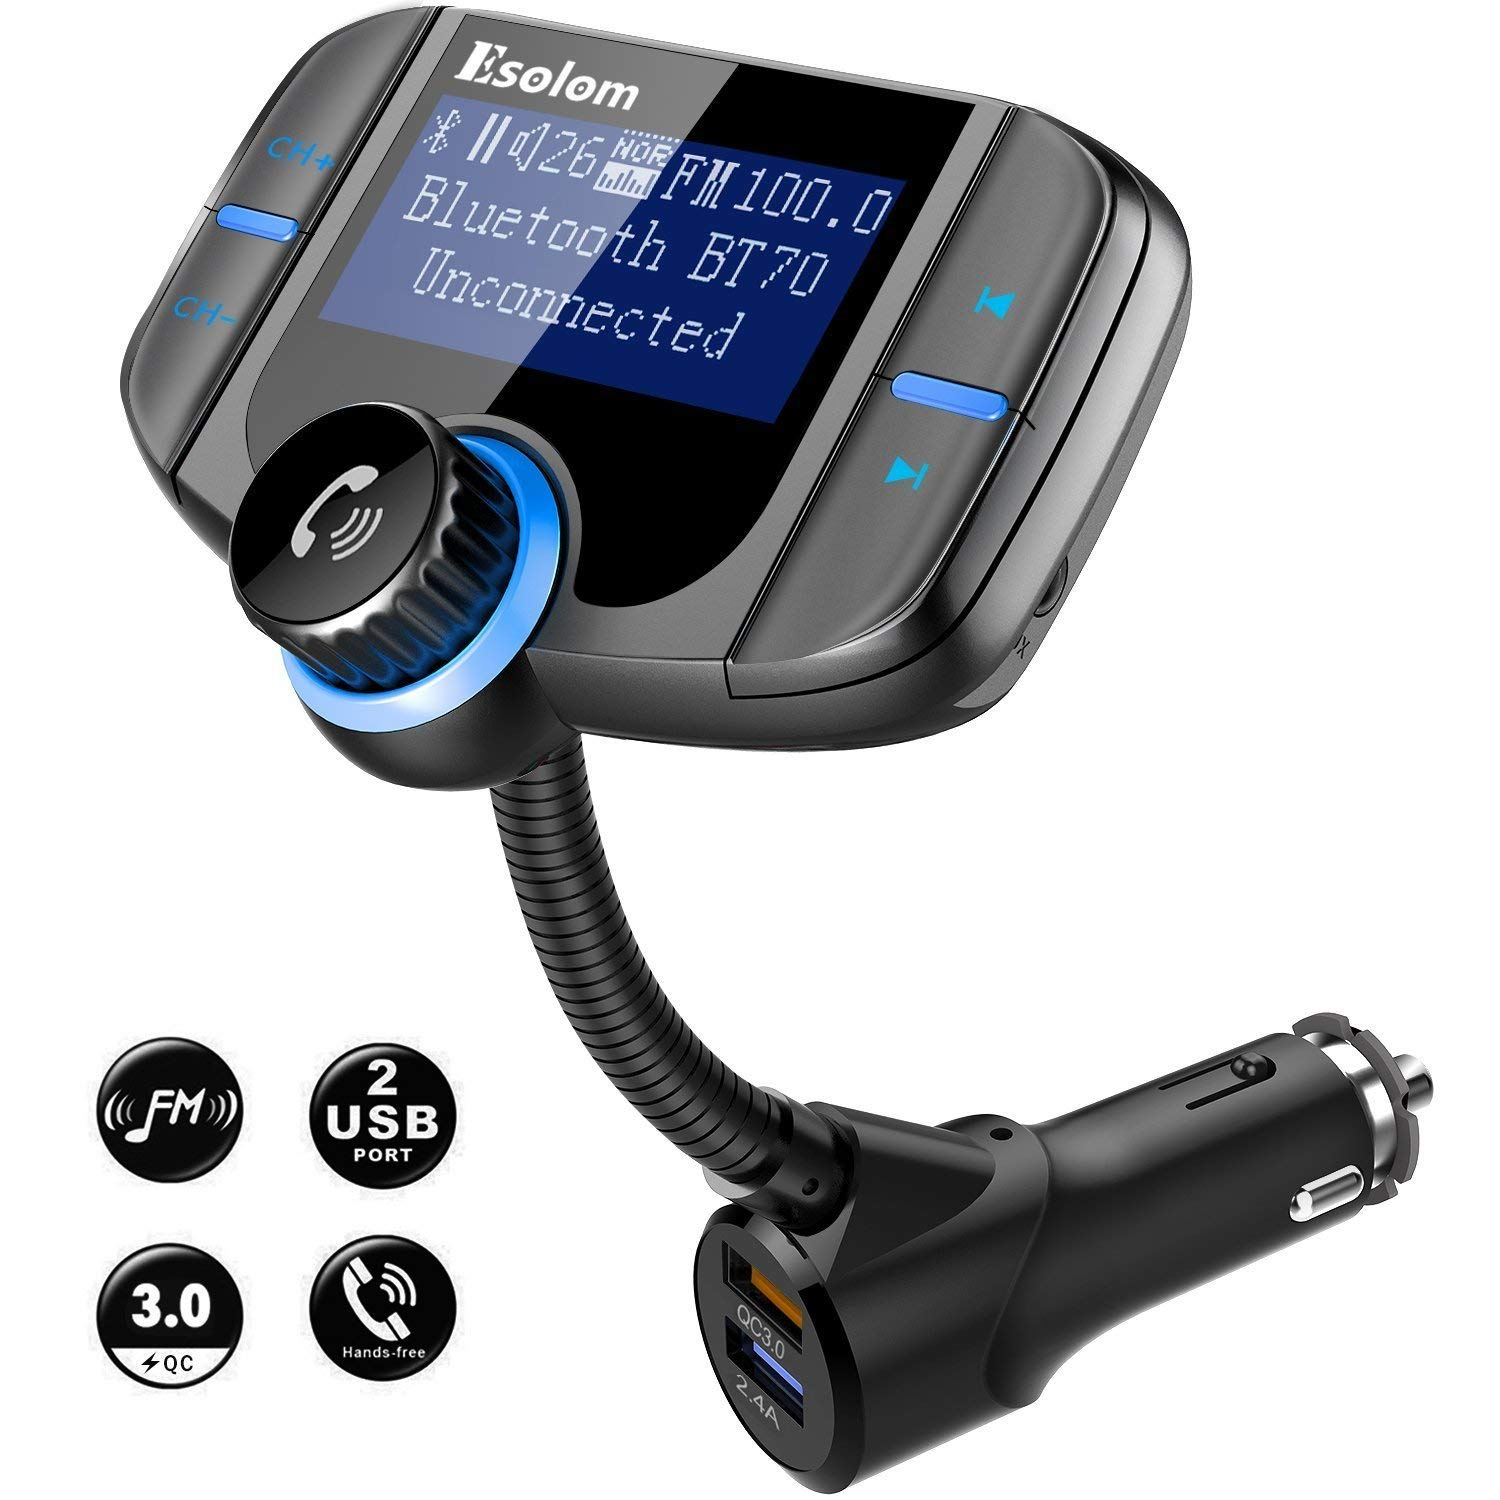 Sawpy Bluetooth FM Transmitter Wireless Car Stereo Radio Adapter Receiver Hands-free Calling Car Kit